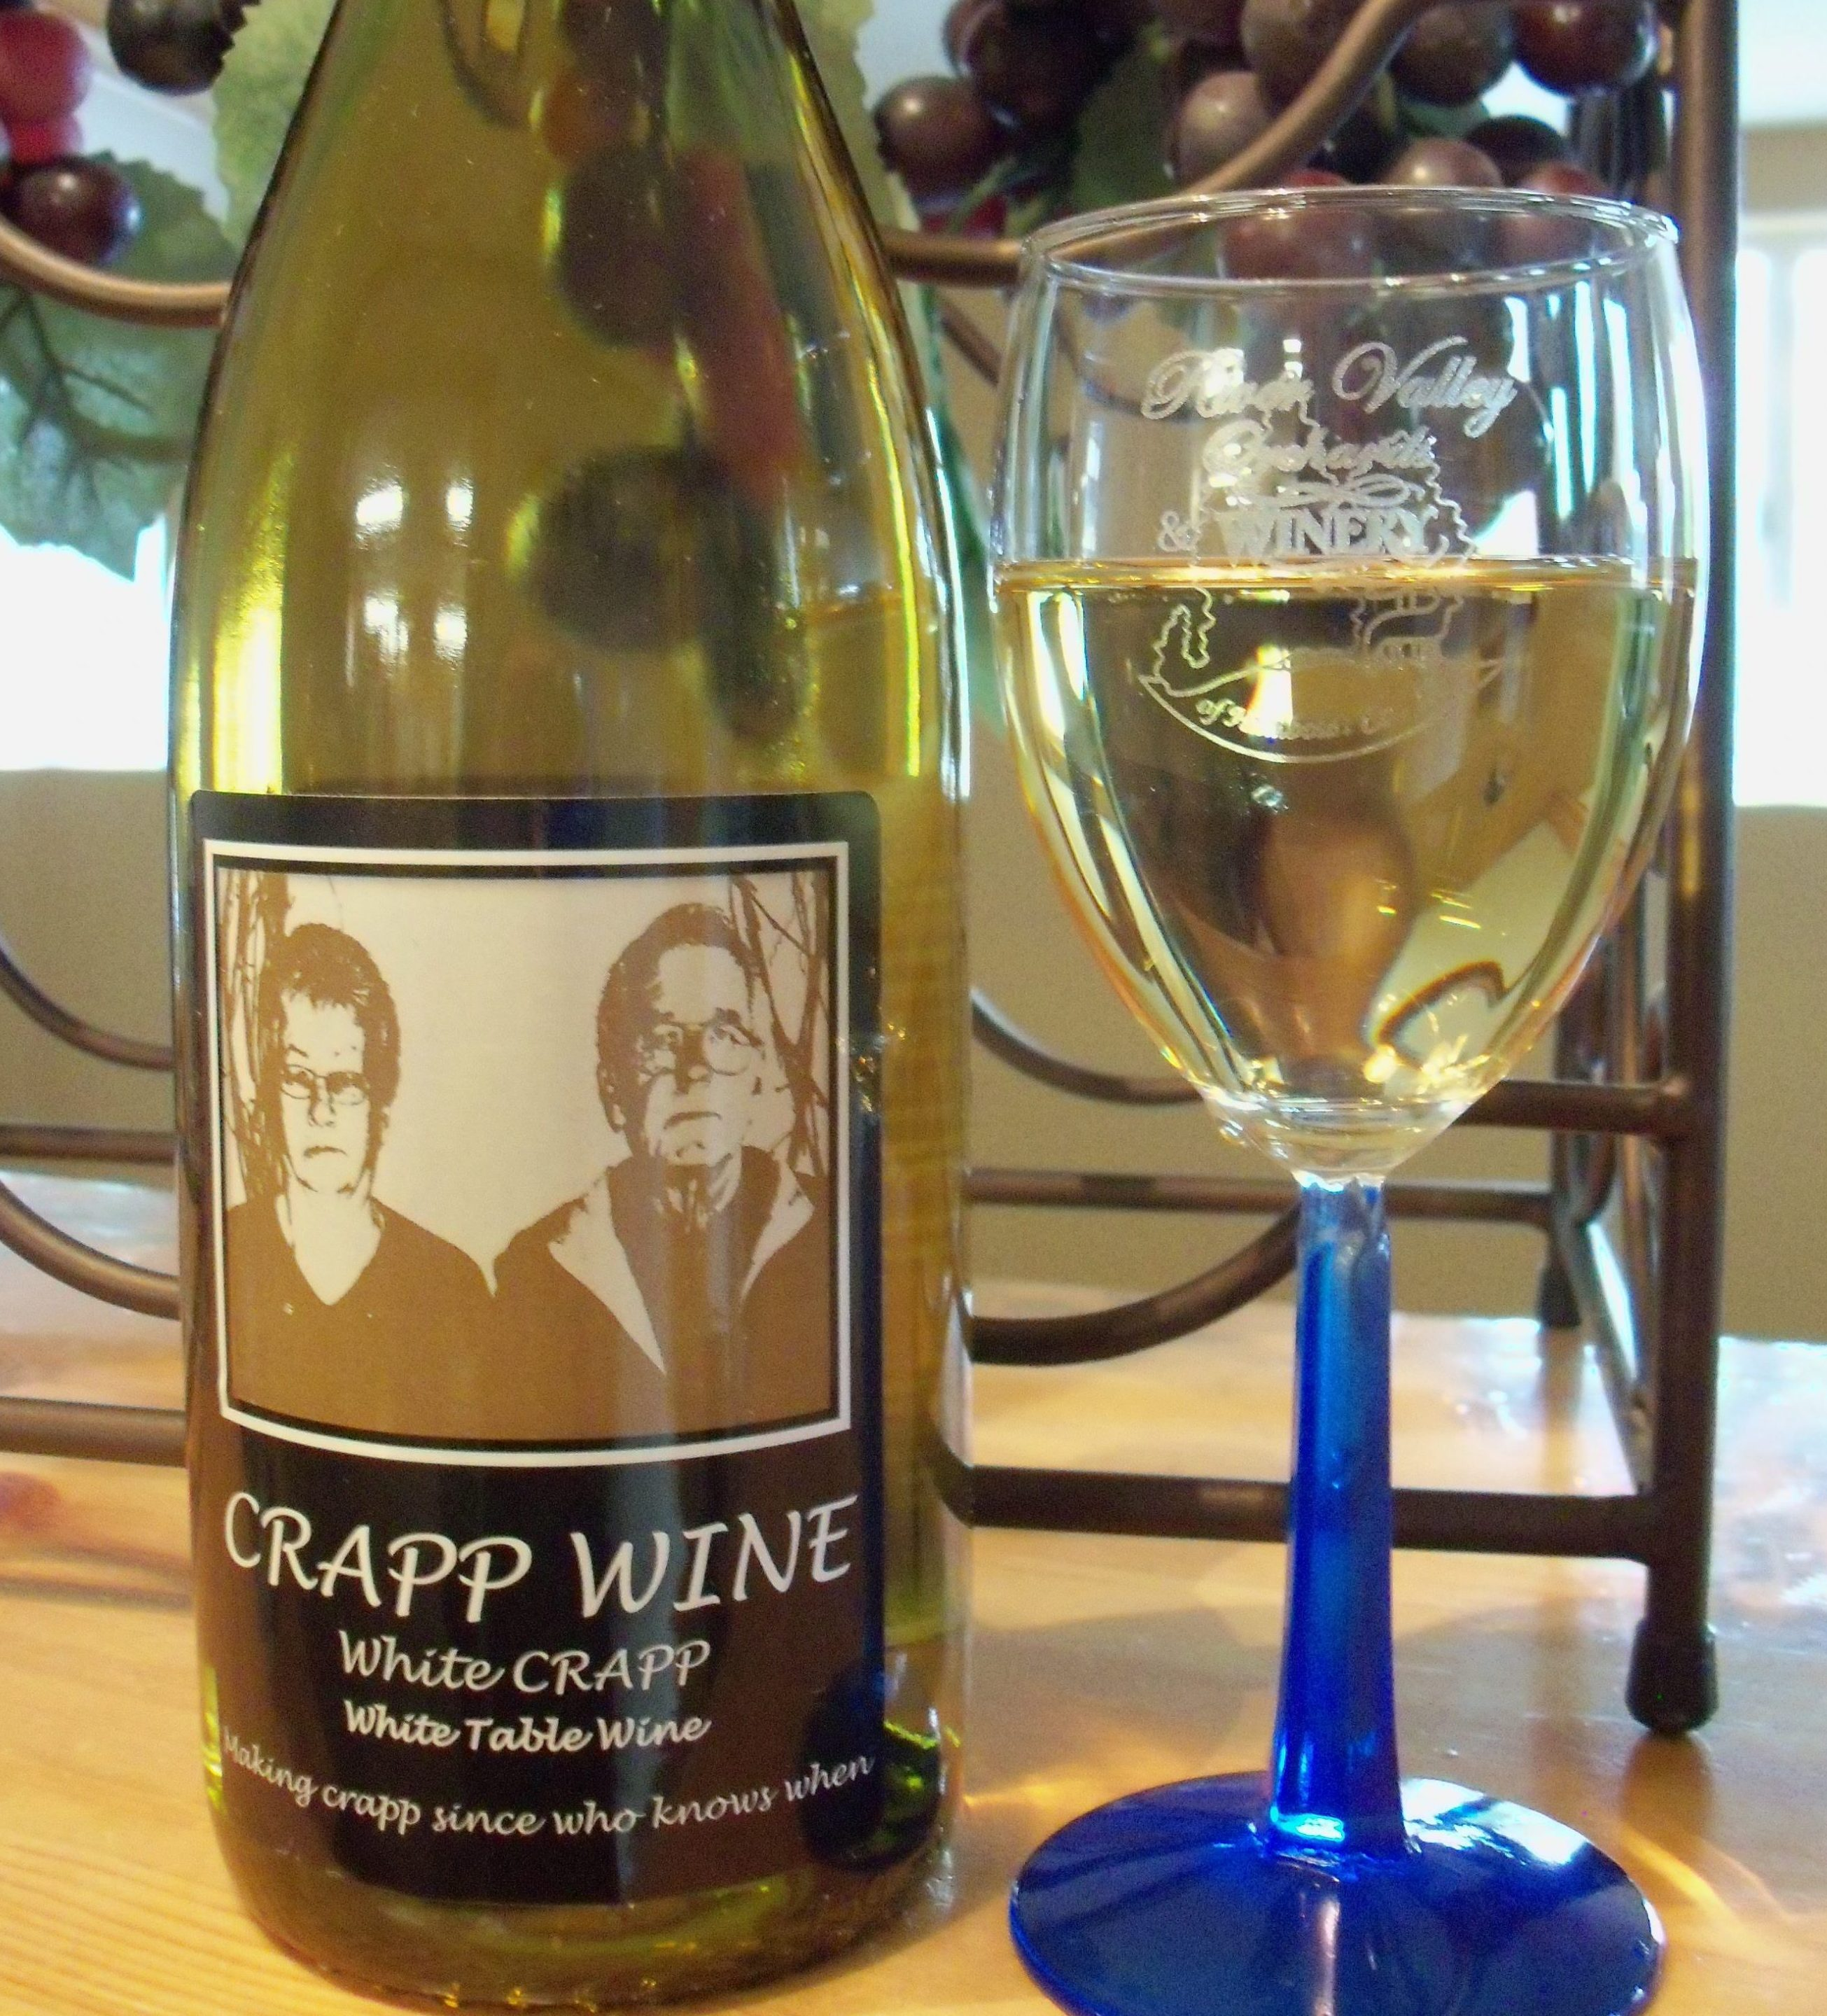 Crapp Wines